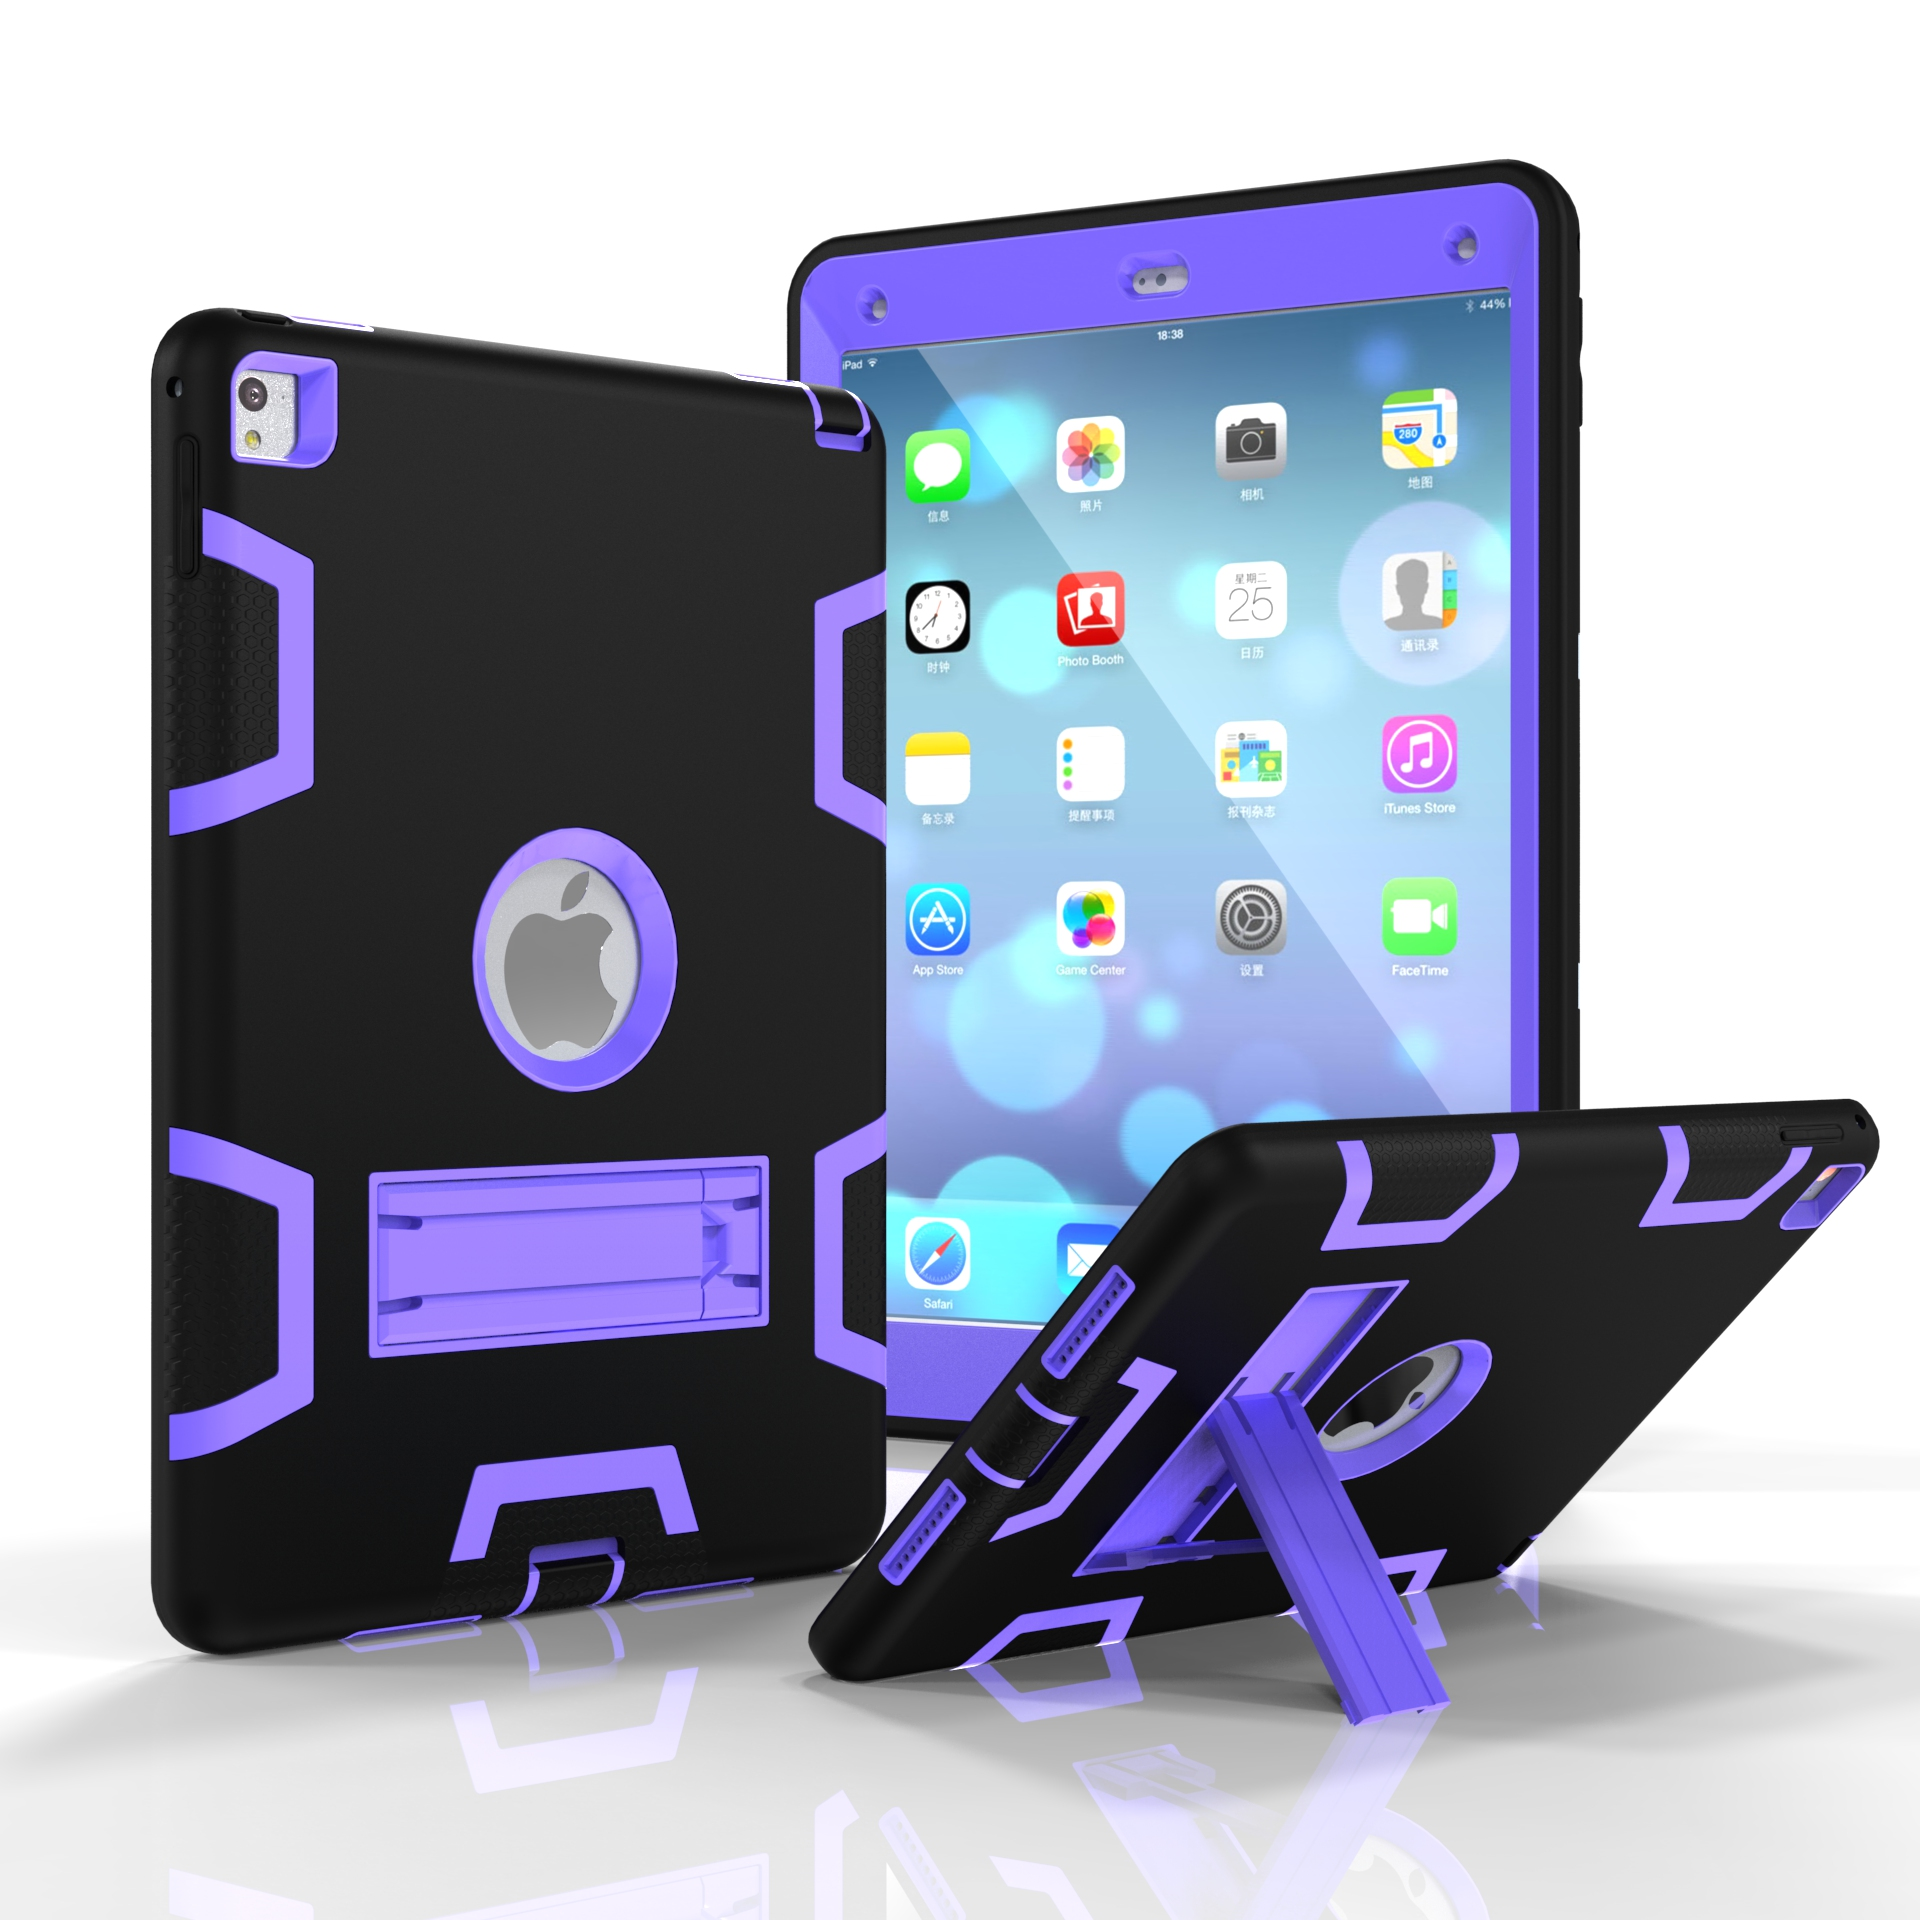 For iPad air2/iPad 6/iPad pro 9.7 2016 PC+ Silicone Hit Color Armor Case Tri-proof Shockproof Dustproof Anti-fall Protective Cover  Black + purple